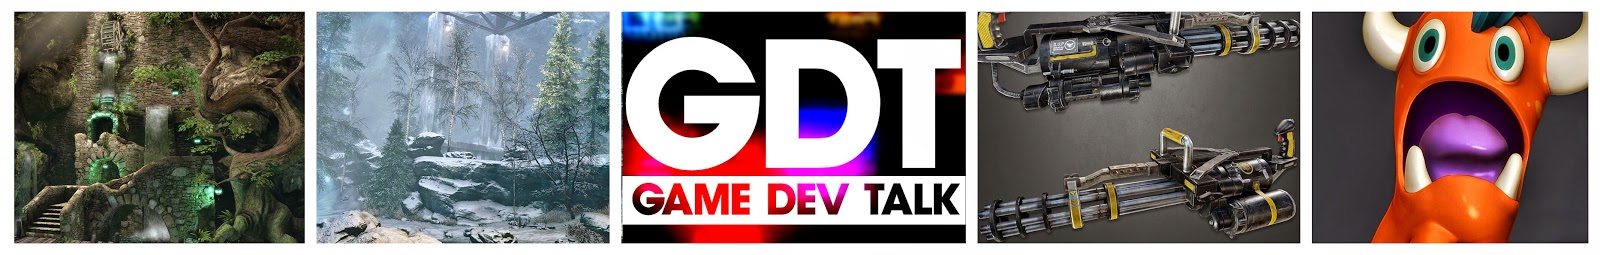 http://gamedevtalk.com/game-dev-talk-interview-nathanial-castronovo/